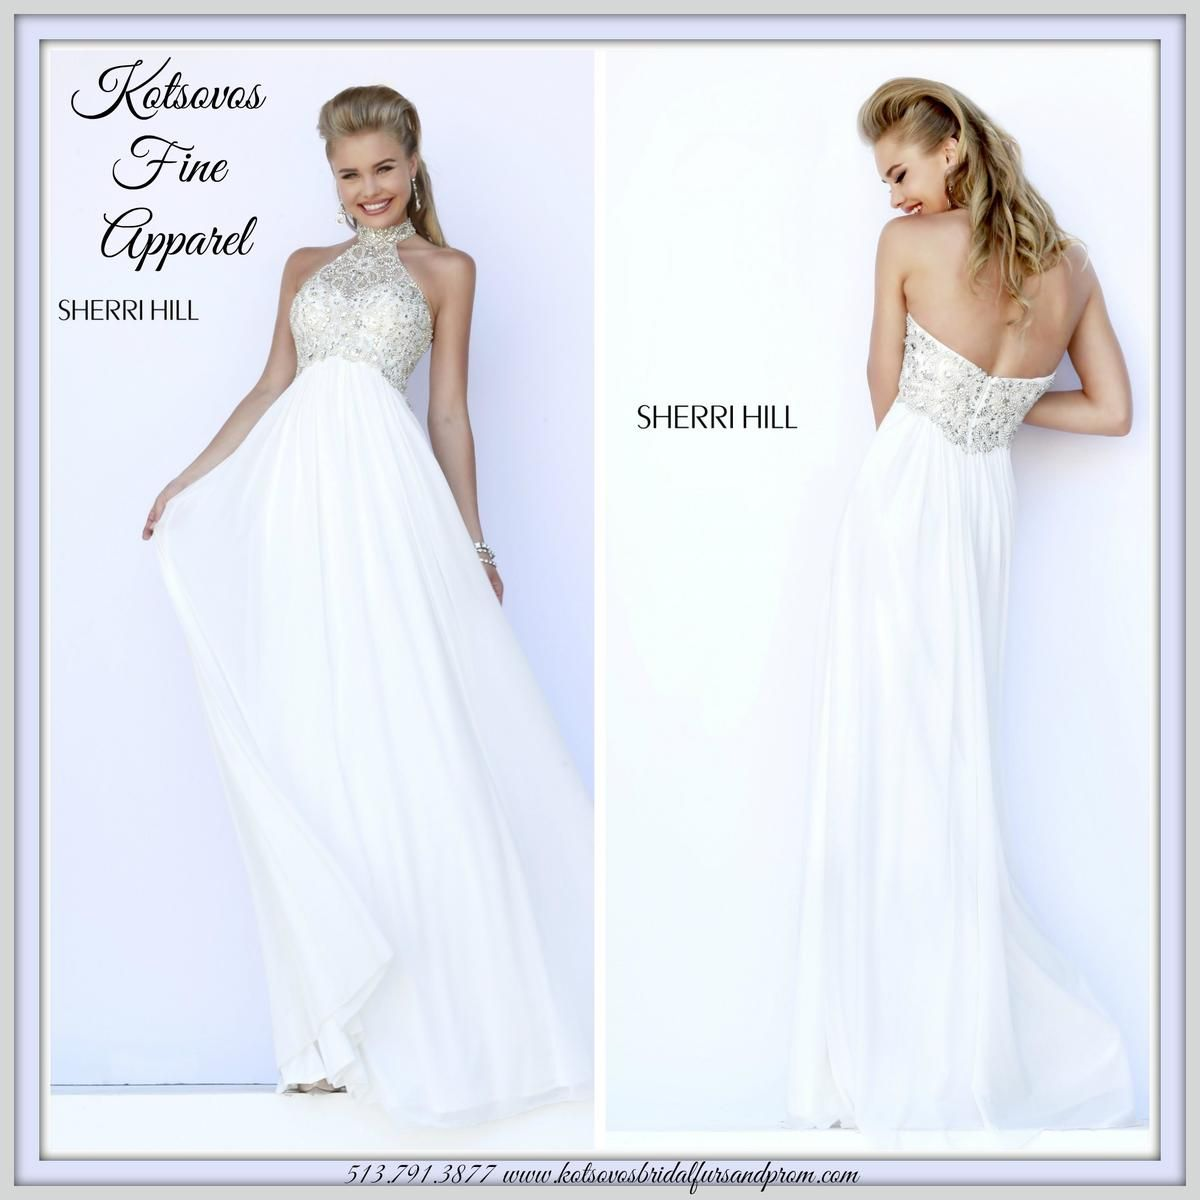 This opulent white gown is ideal for the nontraditional bride or